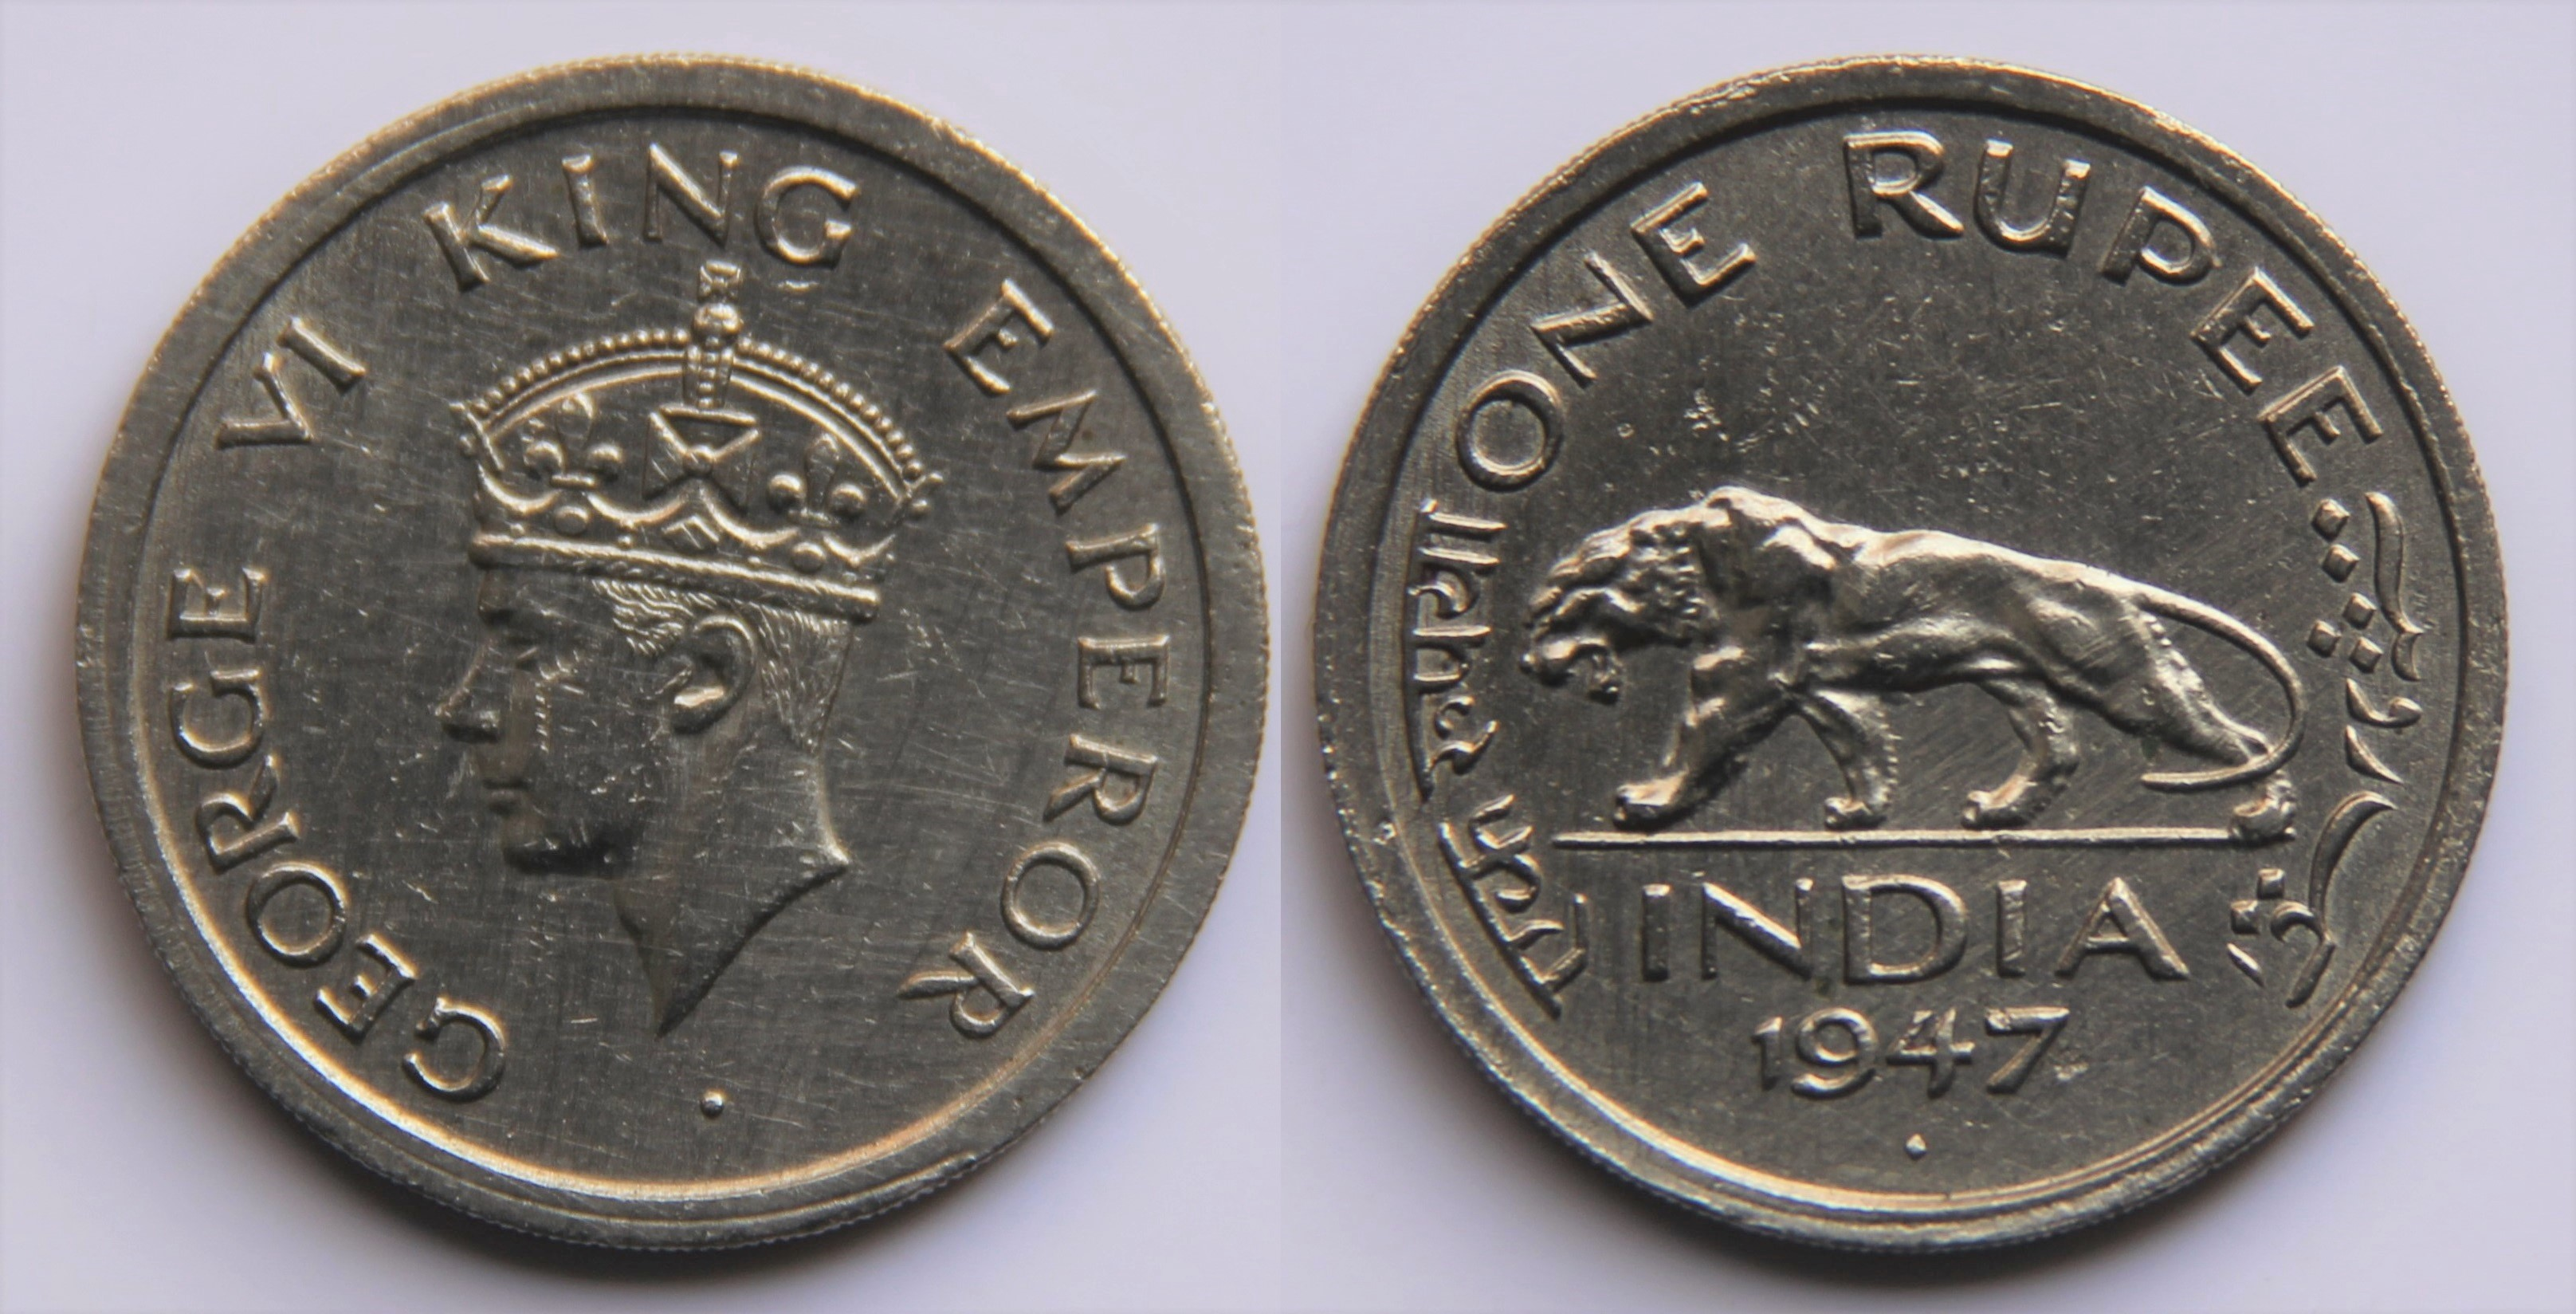 File:1 Indian rupee.jpg - Wikimedia Commons